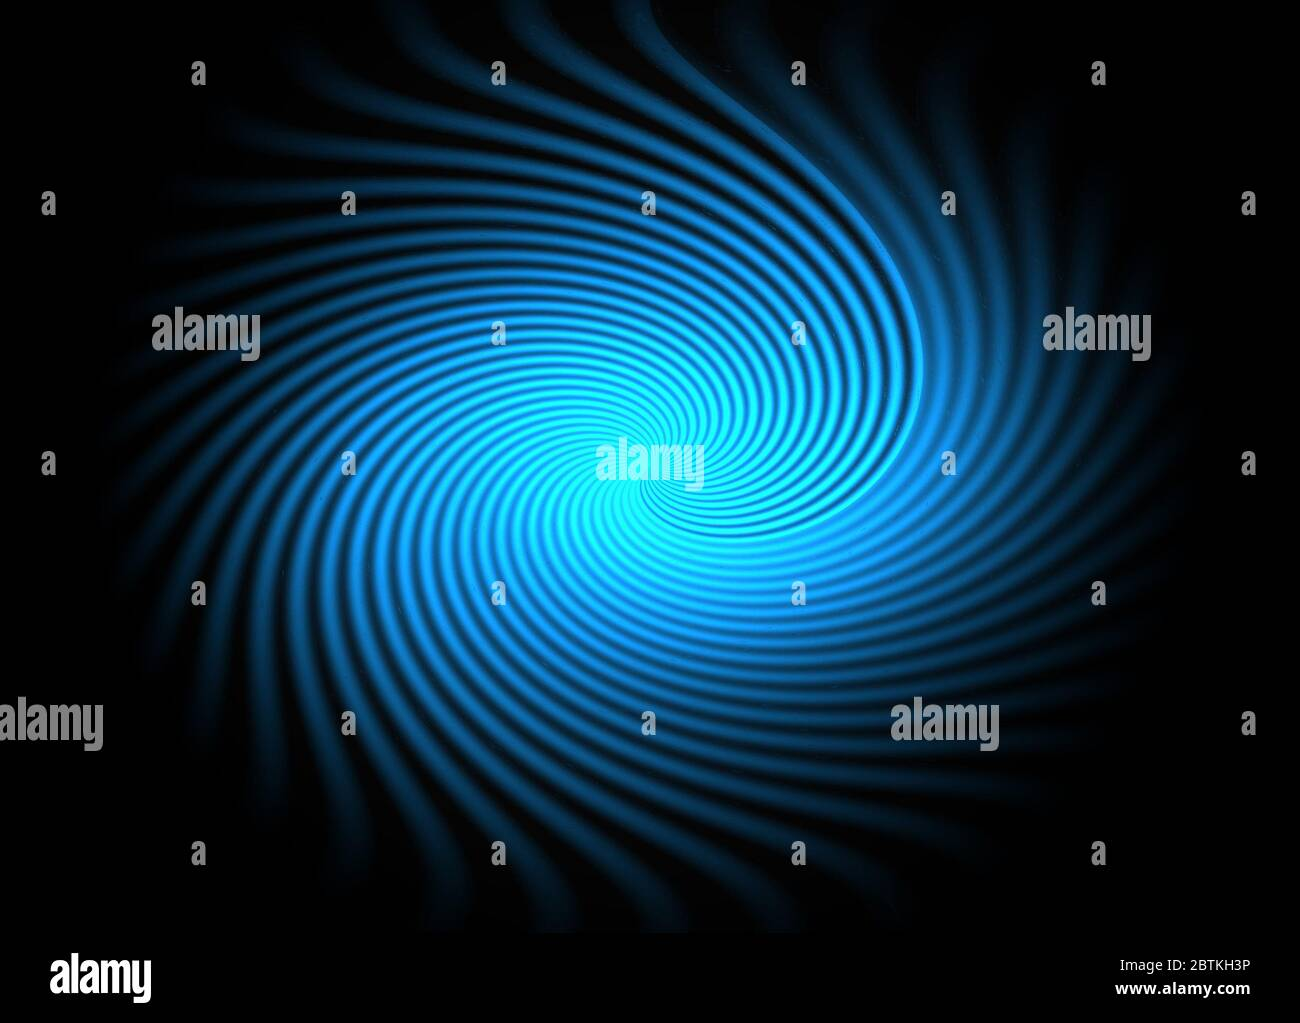 Abstract bright electric blue swirl effect on black background, concept for space, sea, creatures, light, power, energy, electricity Stock Photo